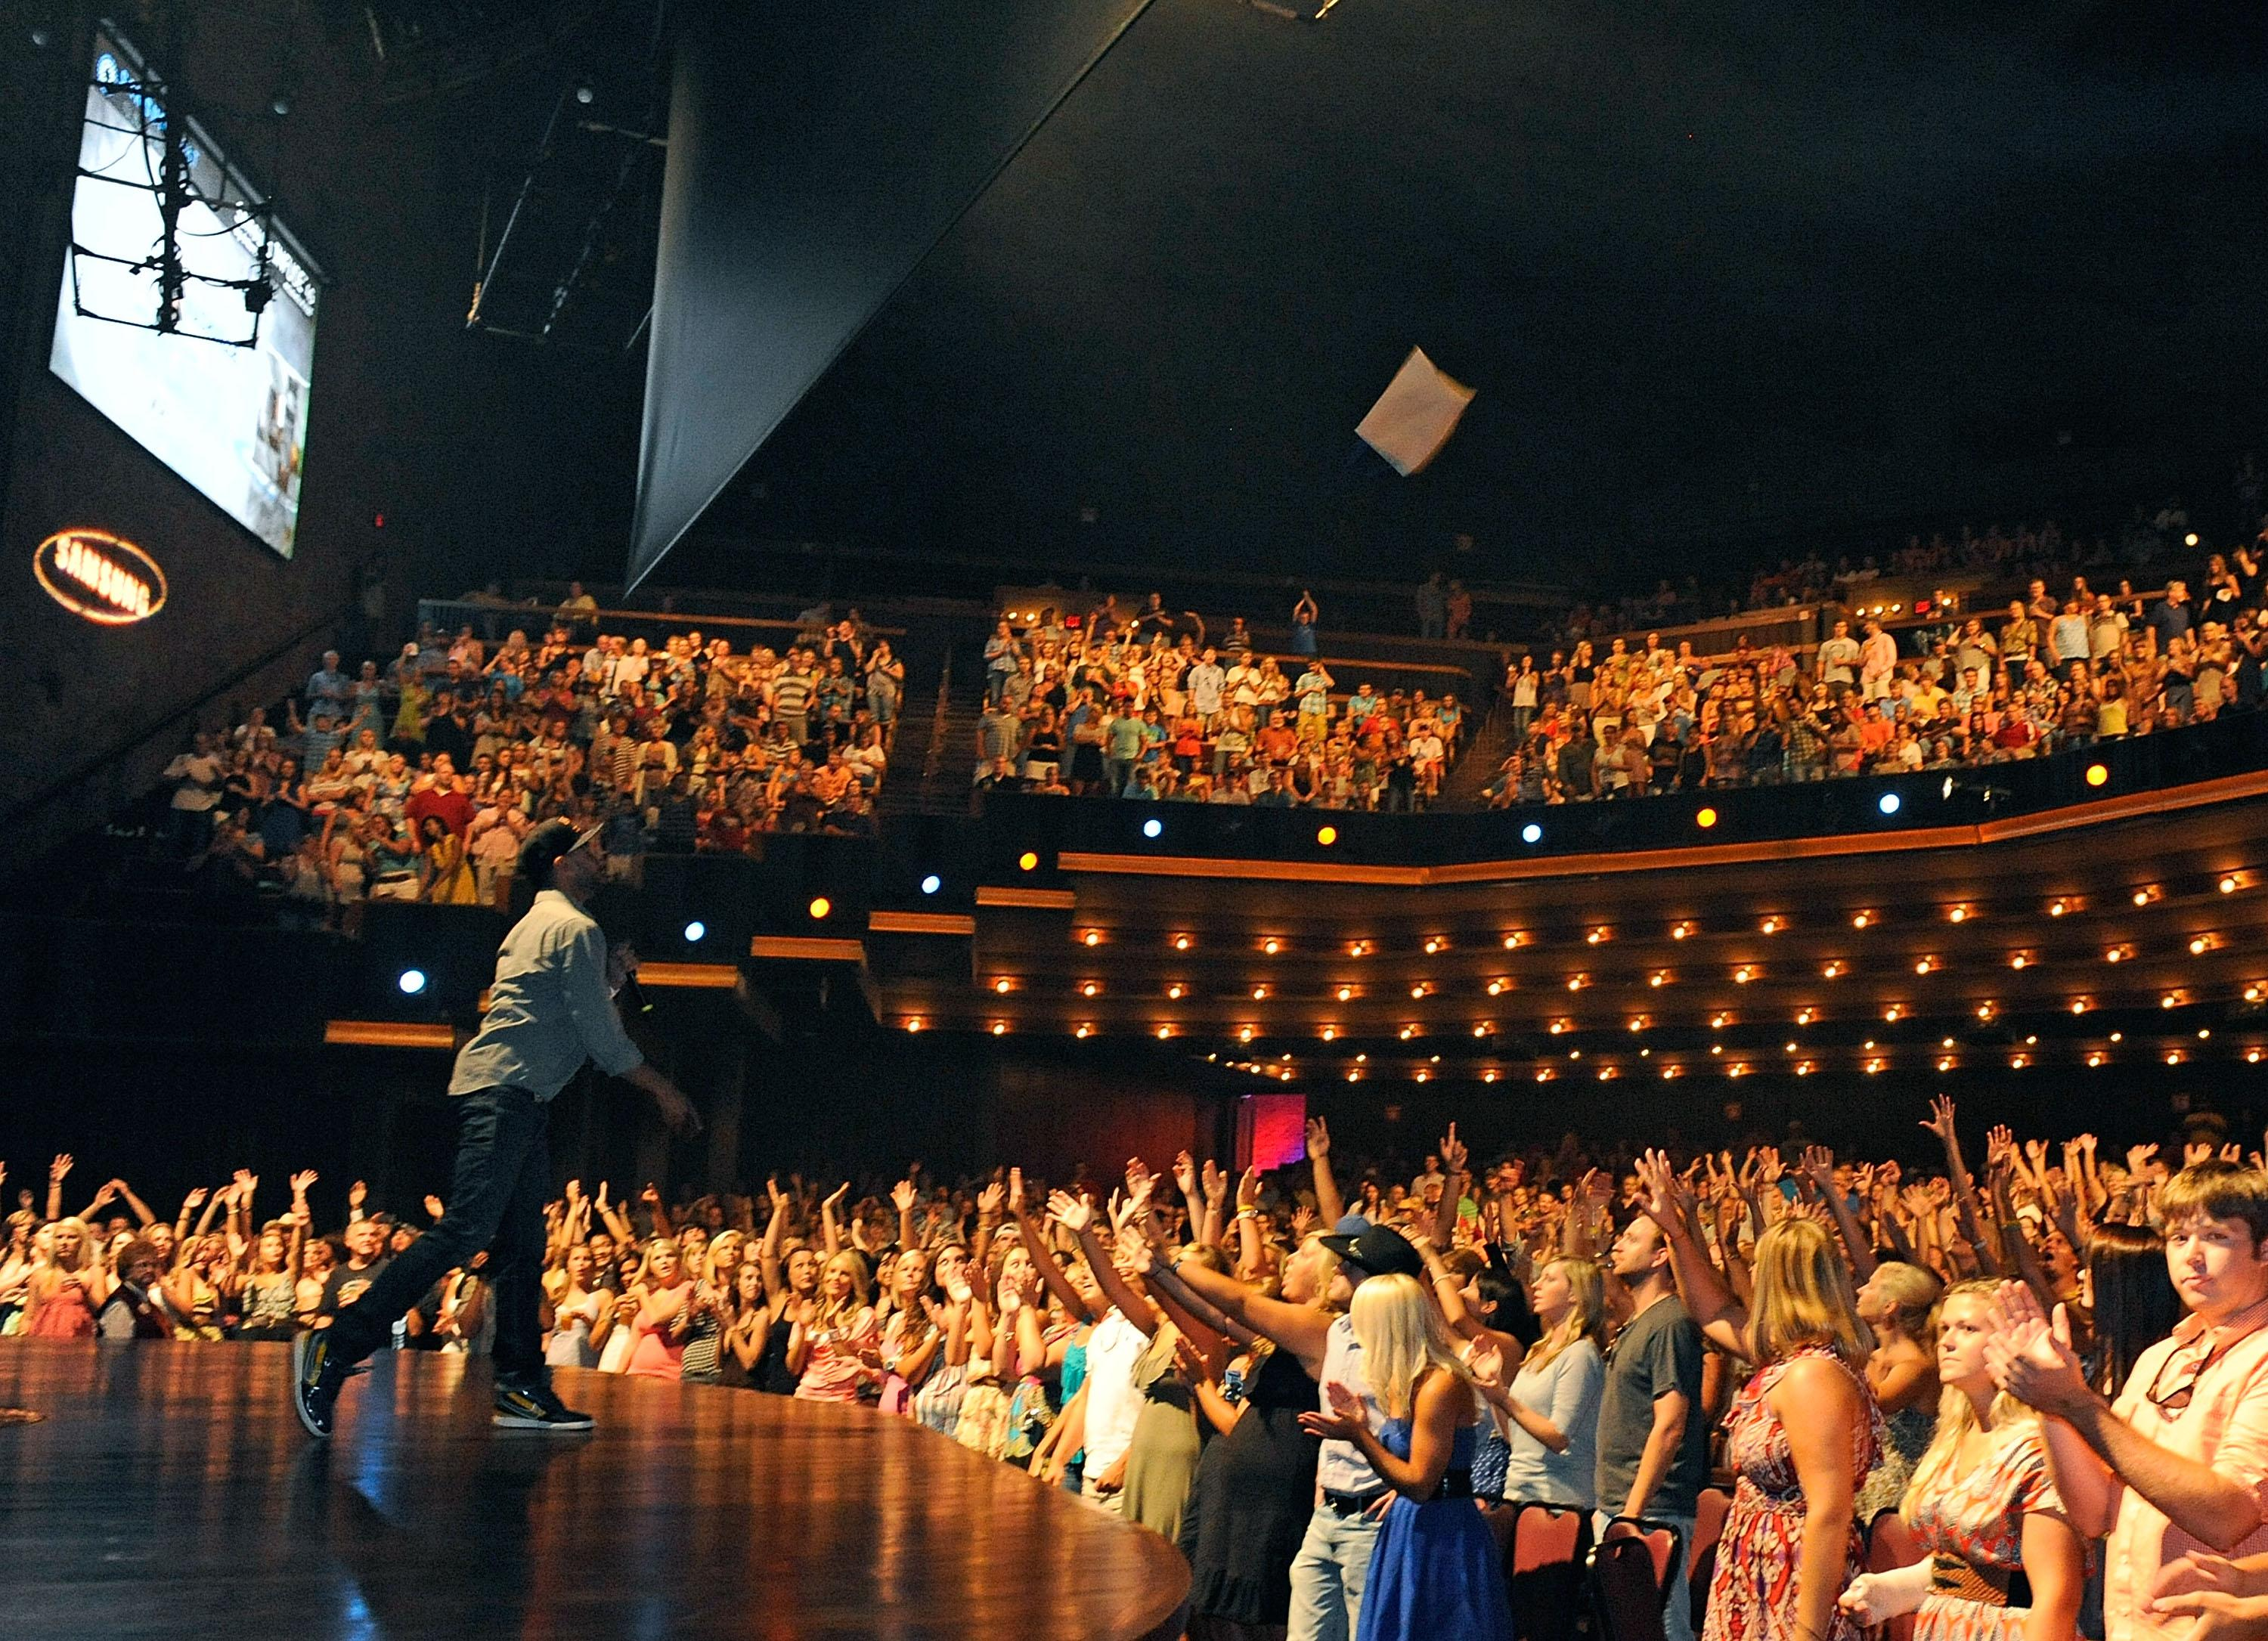 "<strong>Grand Ole Opry - Nashville, TN</strong><br><br>Opened in 1925, the Opry has become known as ""country's most famous stage,"" having showcased a mix of legends and contemporary artists including Patsy Cline, Carrie Underwood, Garth Brooks and the Dixie Chicks. <br><br>(Photo by Frederick Breedon IV/WireImage for Samsung)"